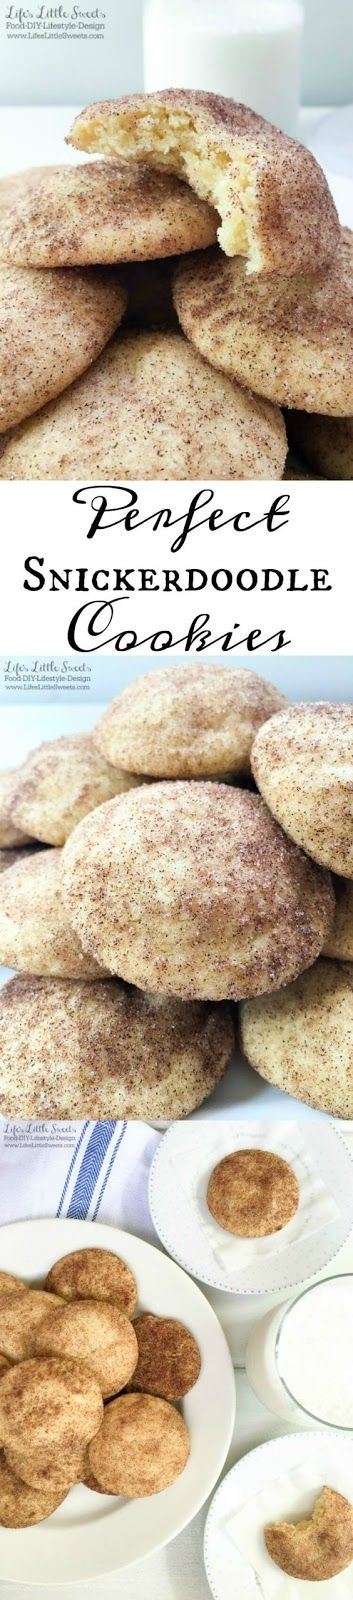 Perfect Snickerdoodle Cookies - Amy's Kitchen